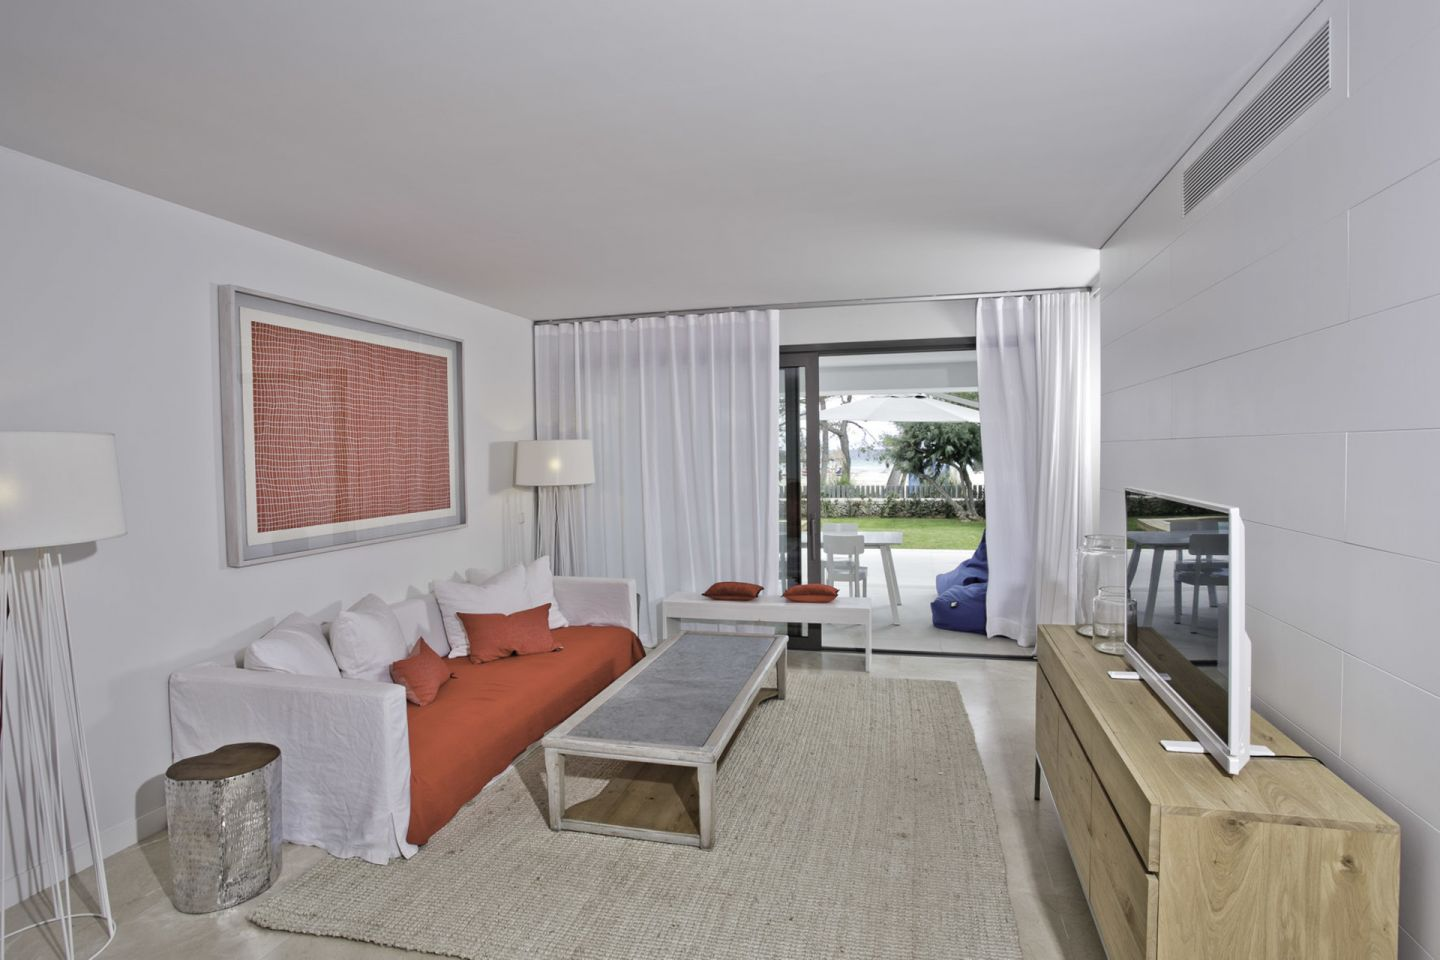 3 Bed Apartment for sale in ALCUDIA 2